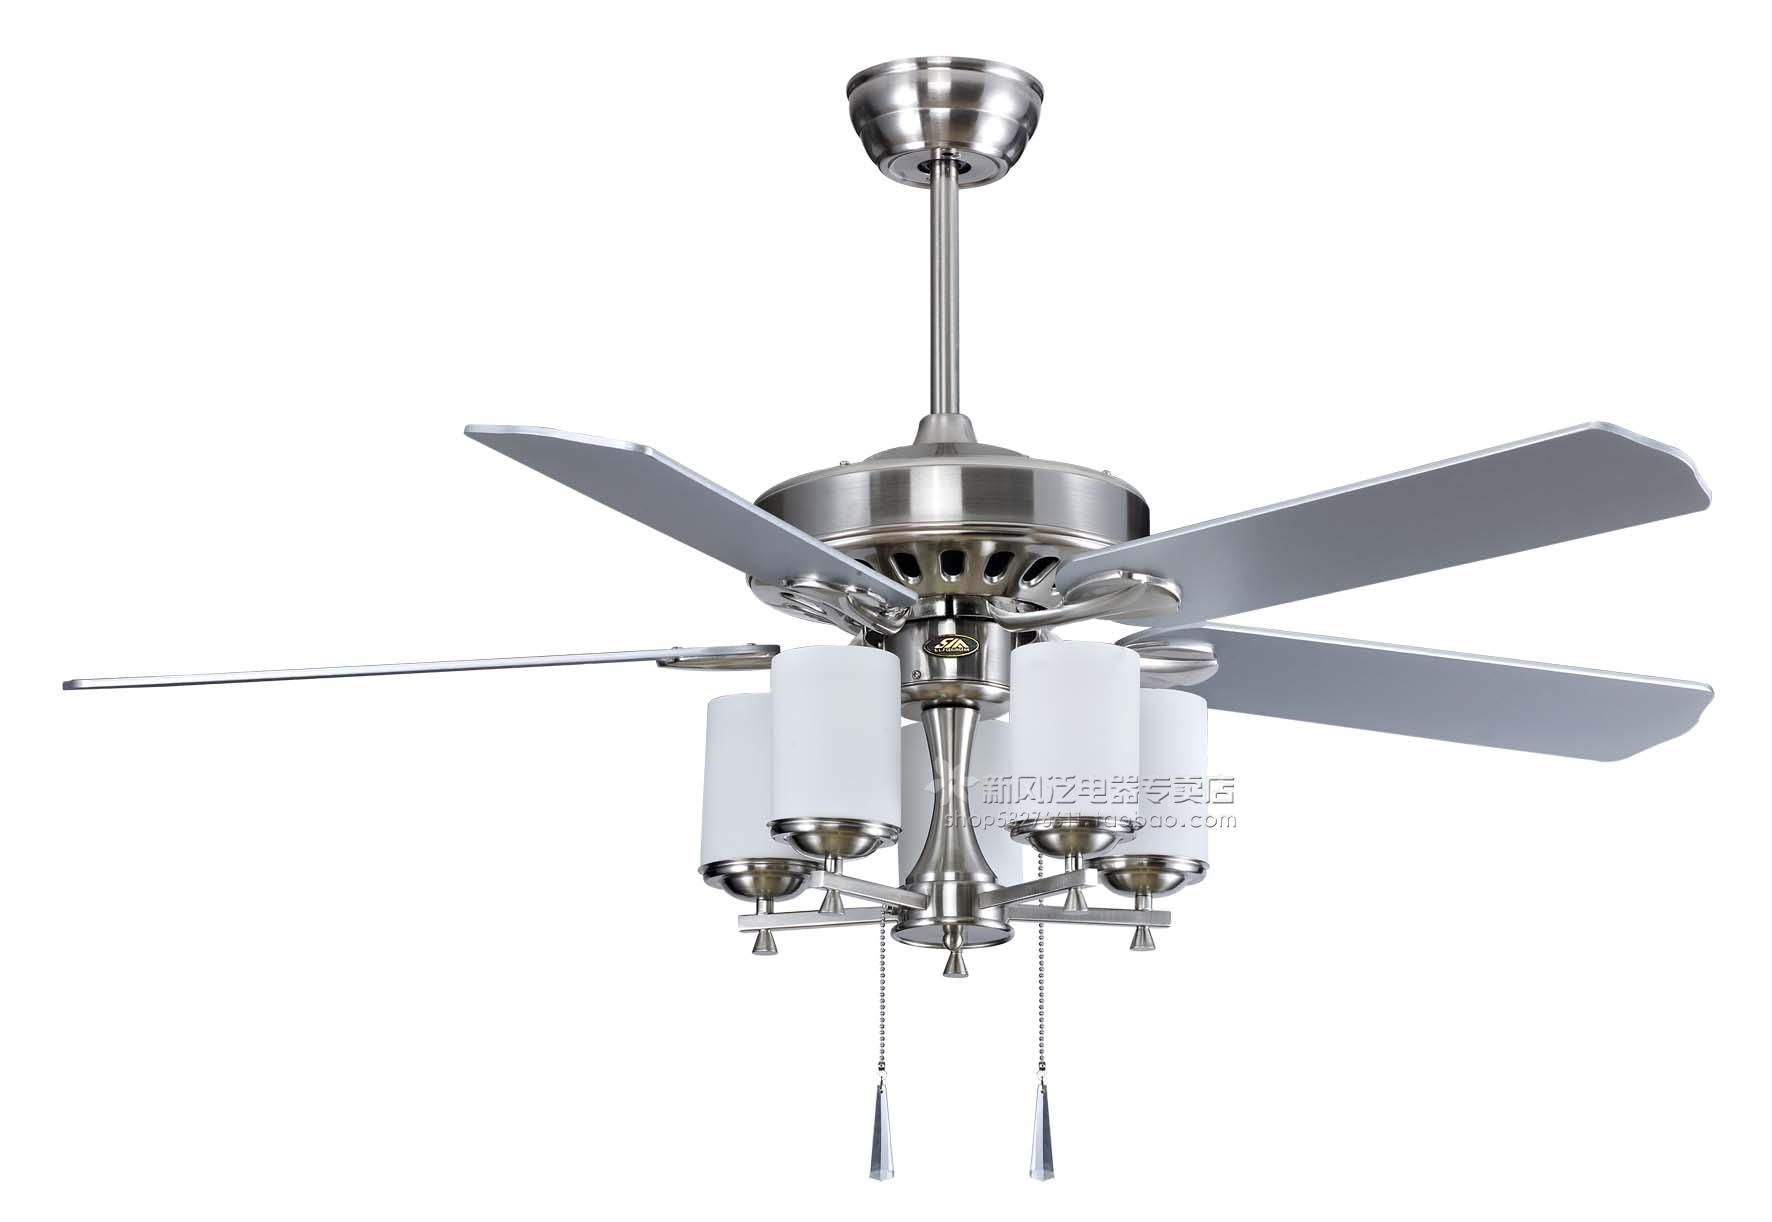 Contemporary Ceiling Fans With Light Homesfeed